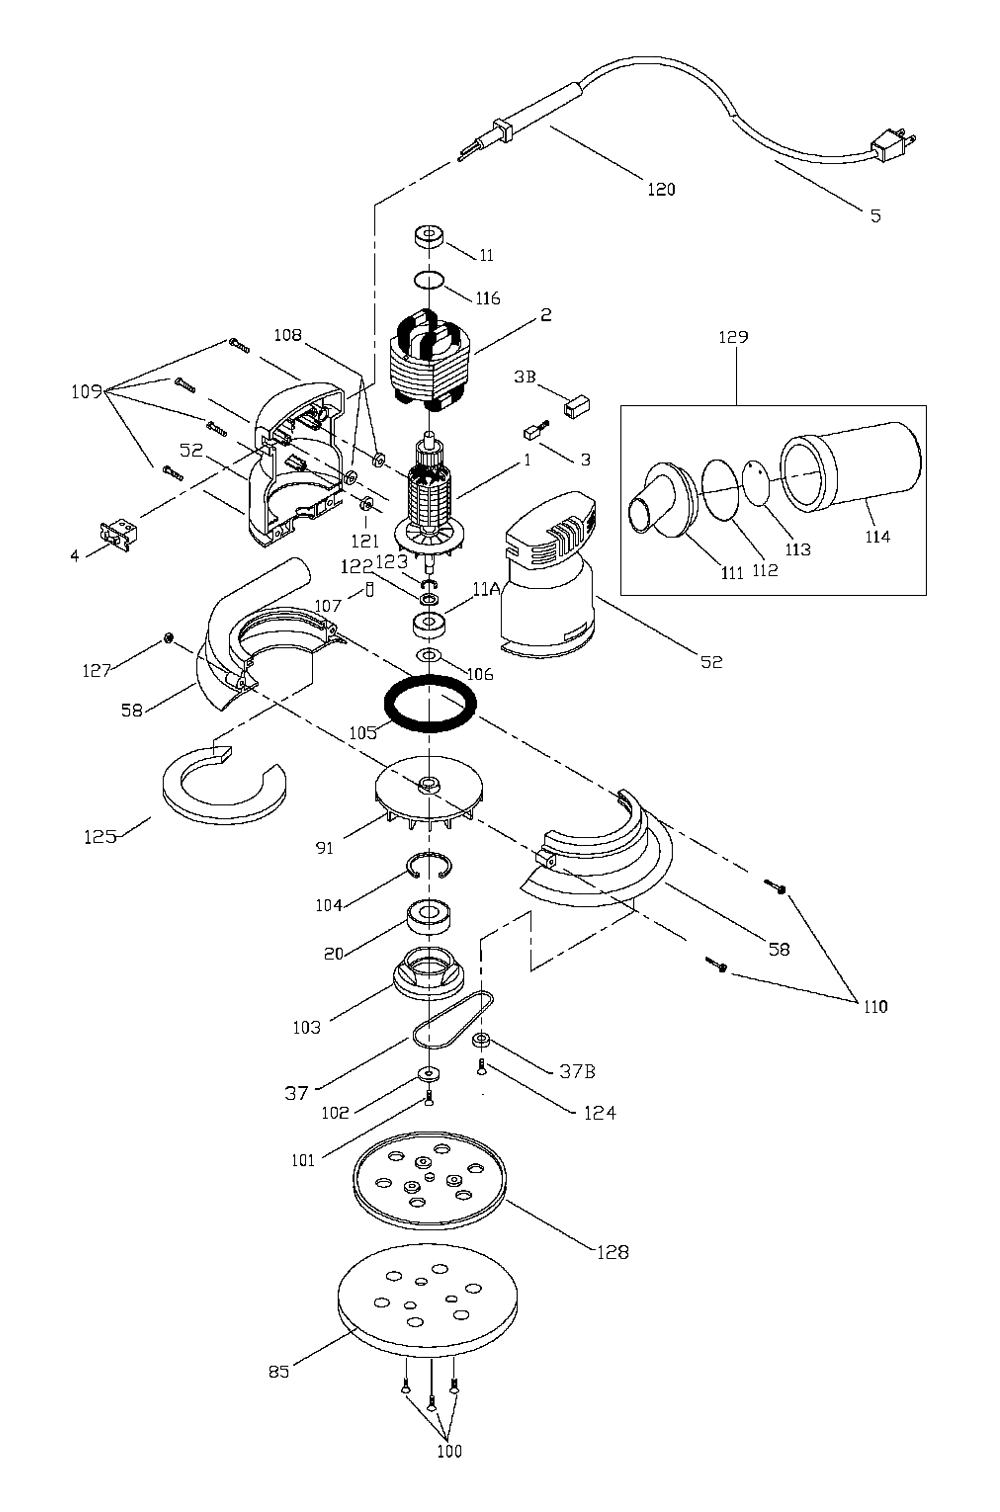 Schematic For Delta Power Tools, Schematic, Get Free Image